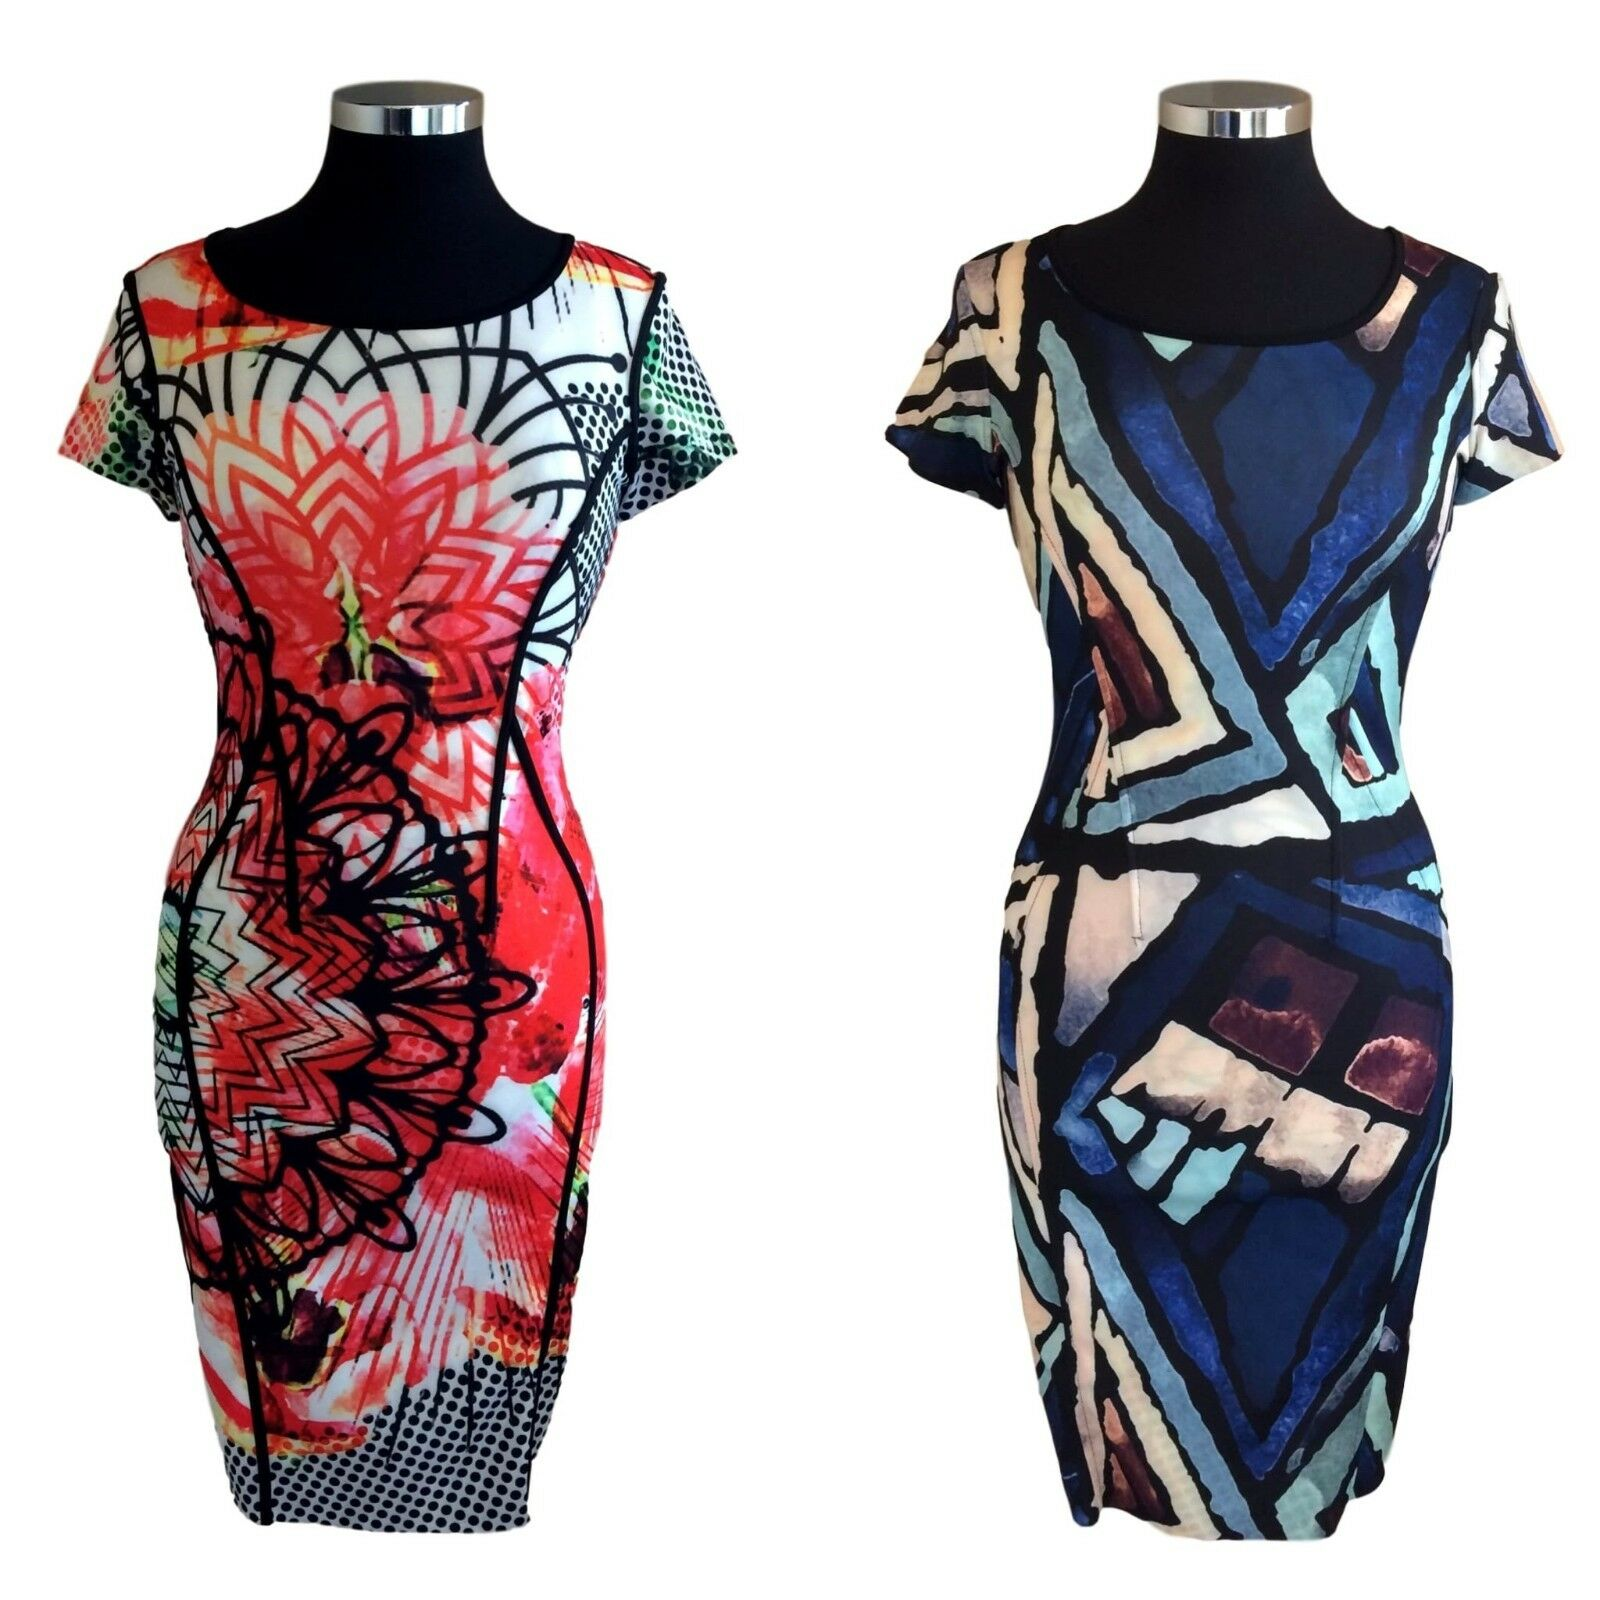 Eroke Fully Reversible Red bluee Dress. ABN80-P22.  BNWT. Sizes 10-14.